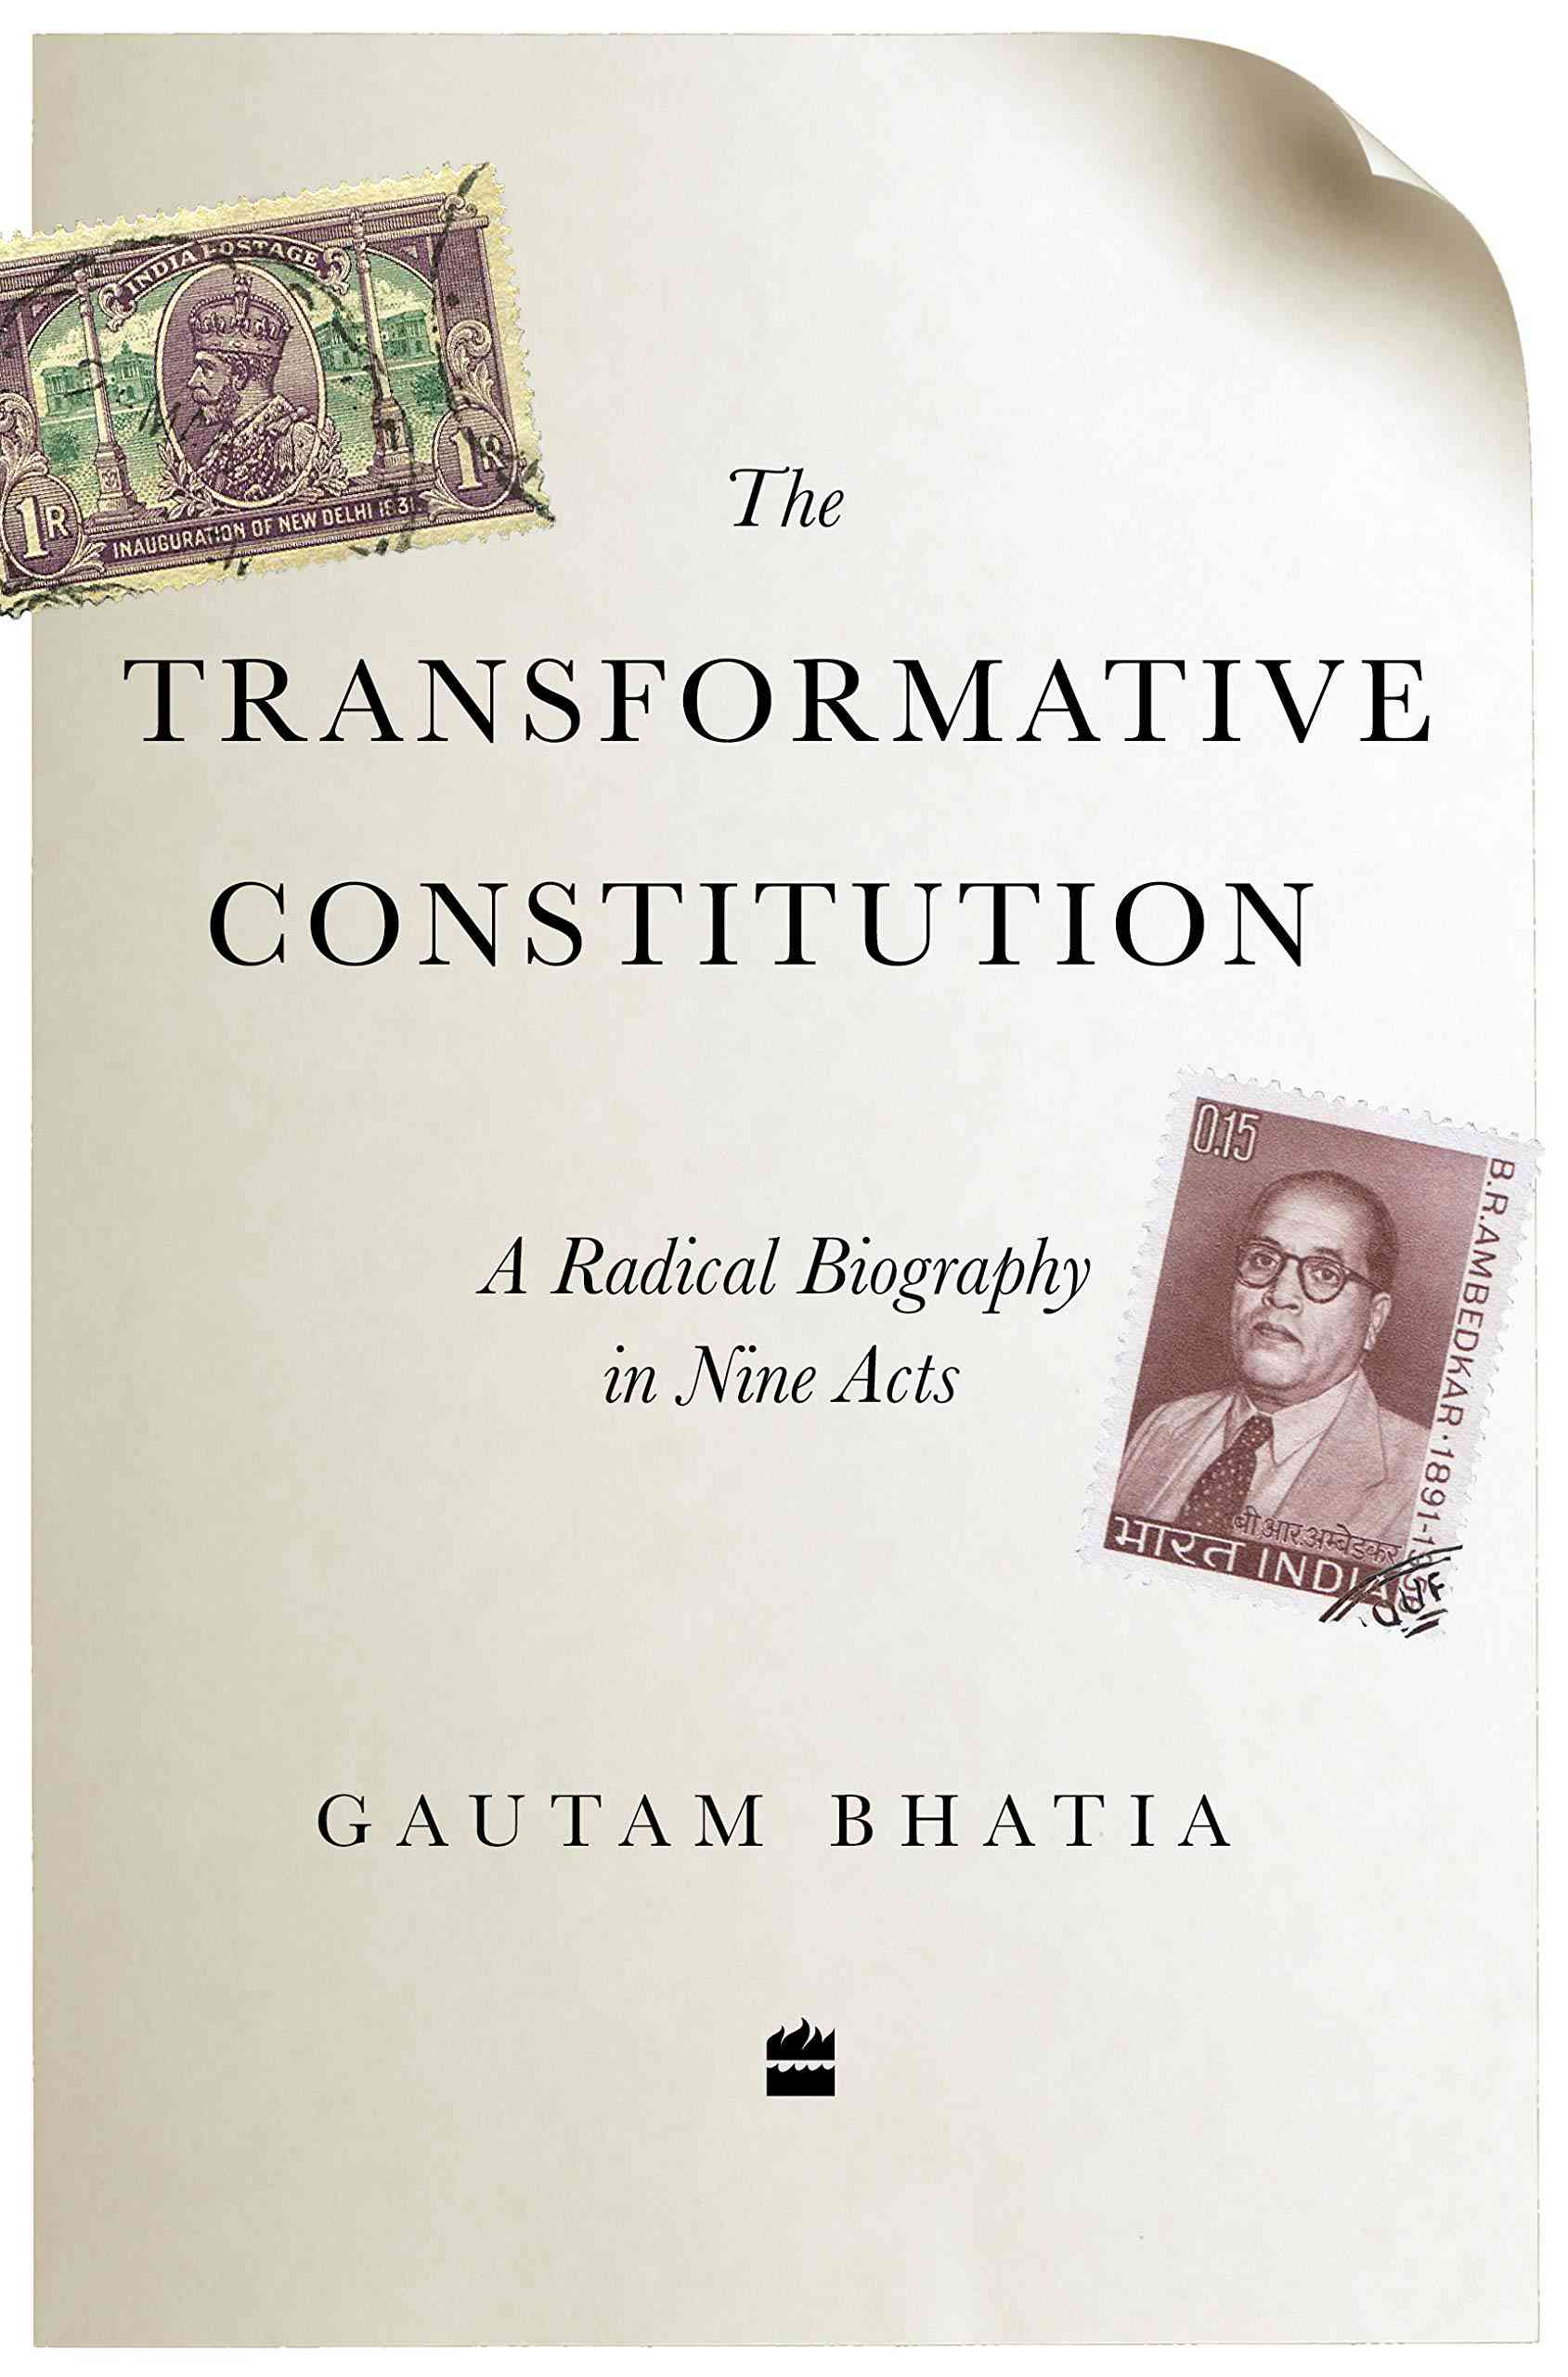 The Transformative Constitution